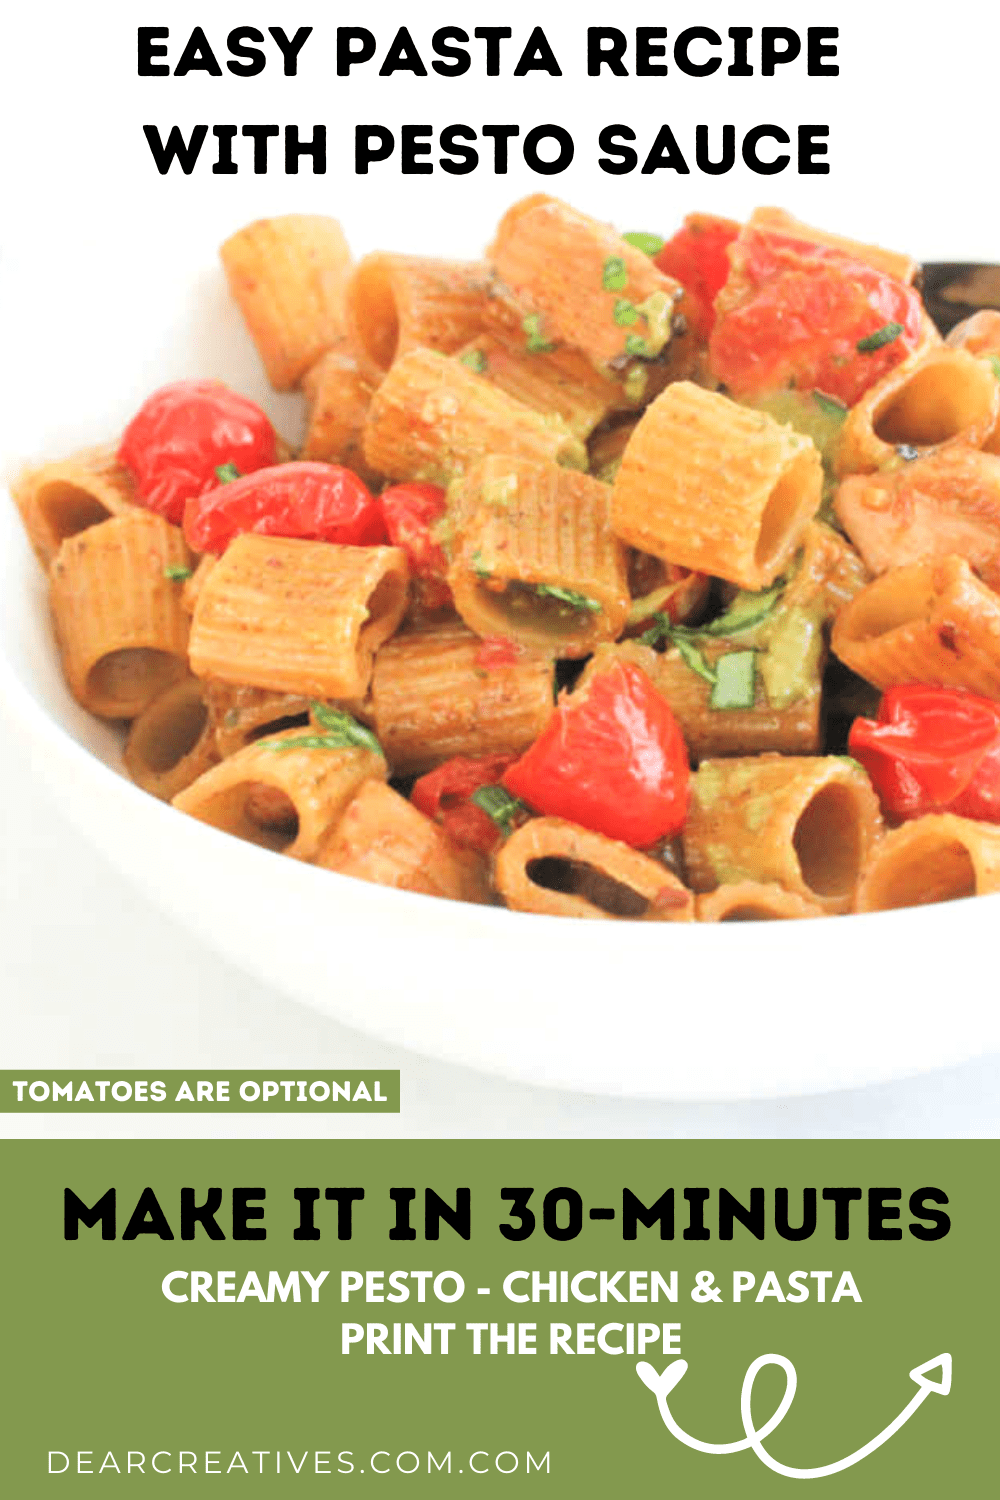 Creamy Pesto Sauce, Chicken, Pasta Noodles, optional tomatoes and garnishes. Ready in 30-minutes. Print the Pasta recipe at DearCreatives.com